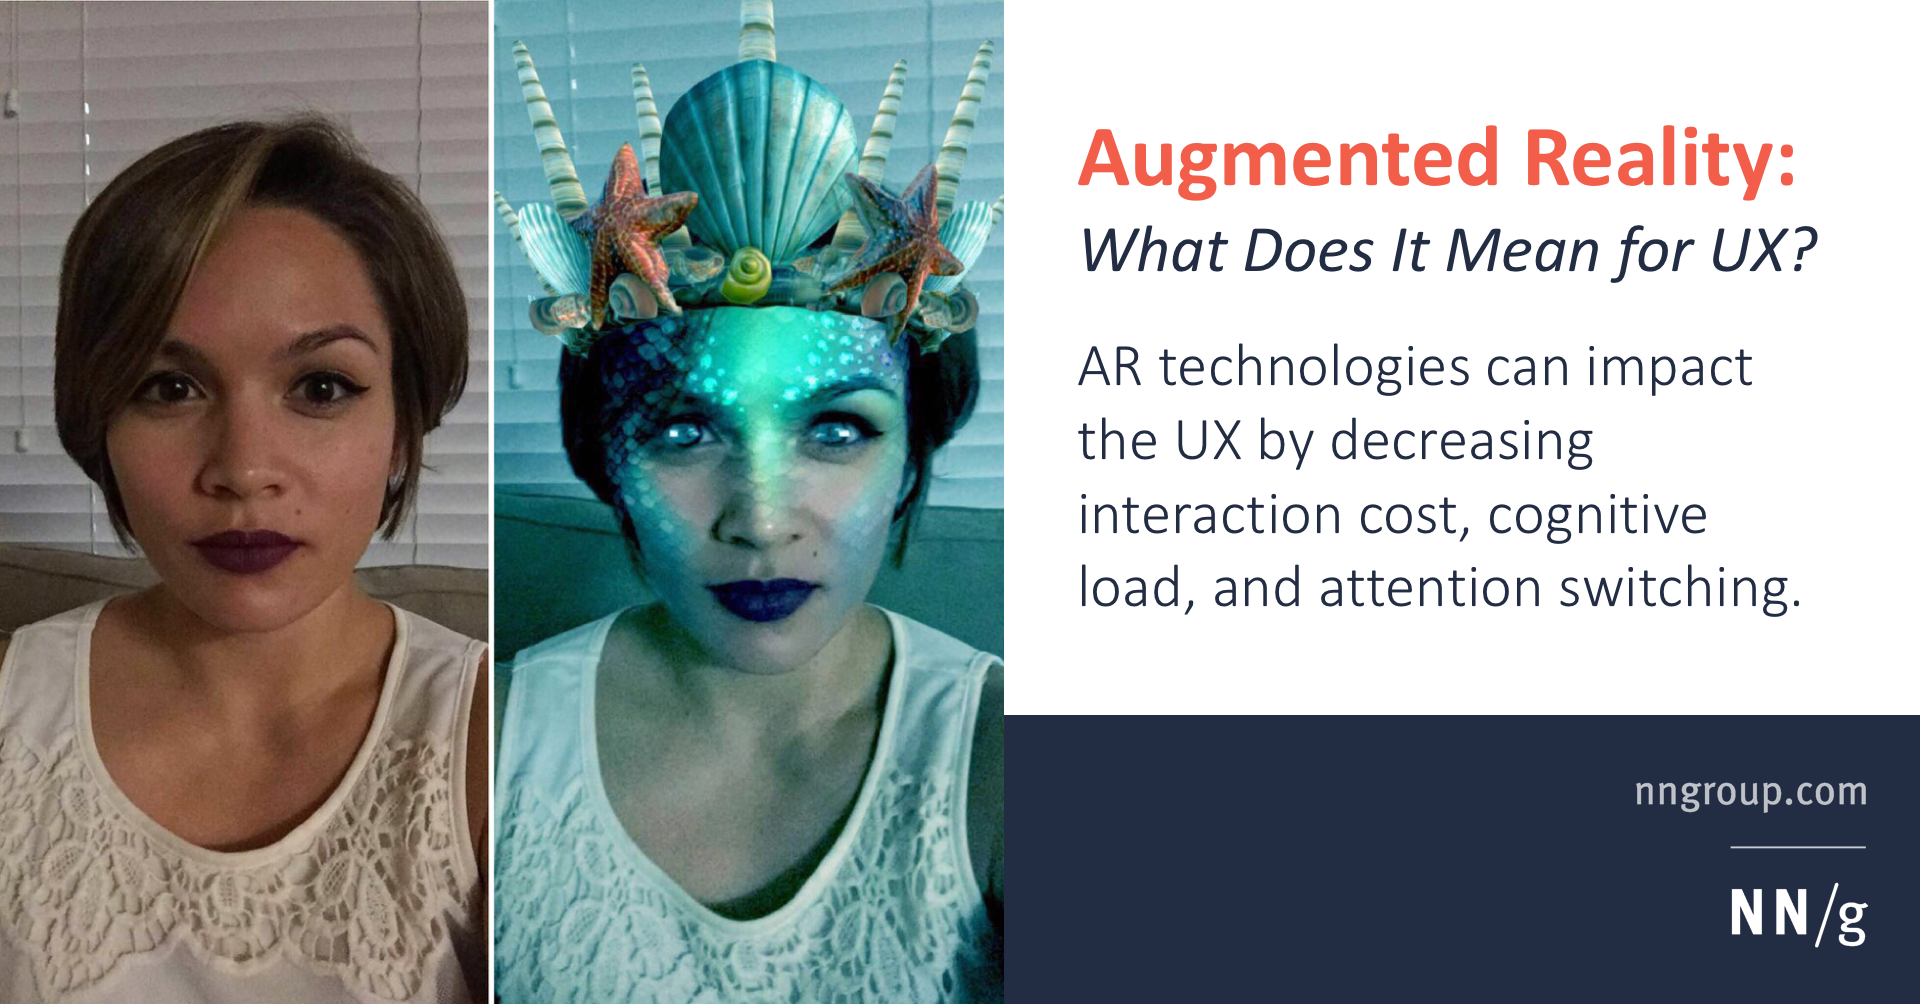 augmented reality: what does it mean for ux?